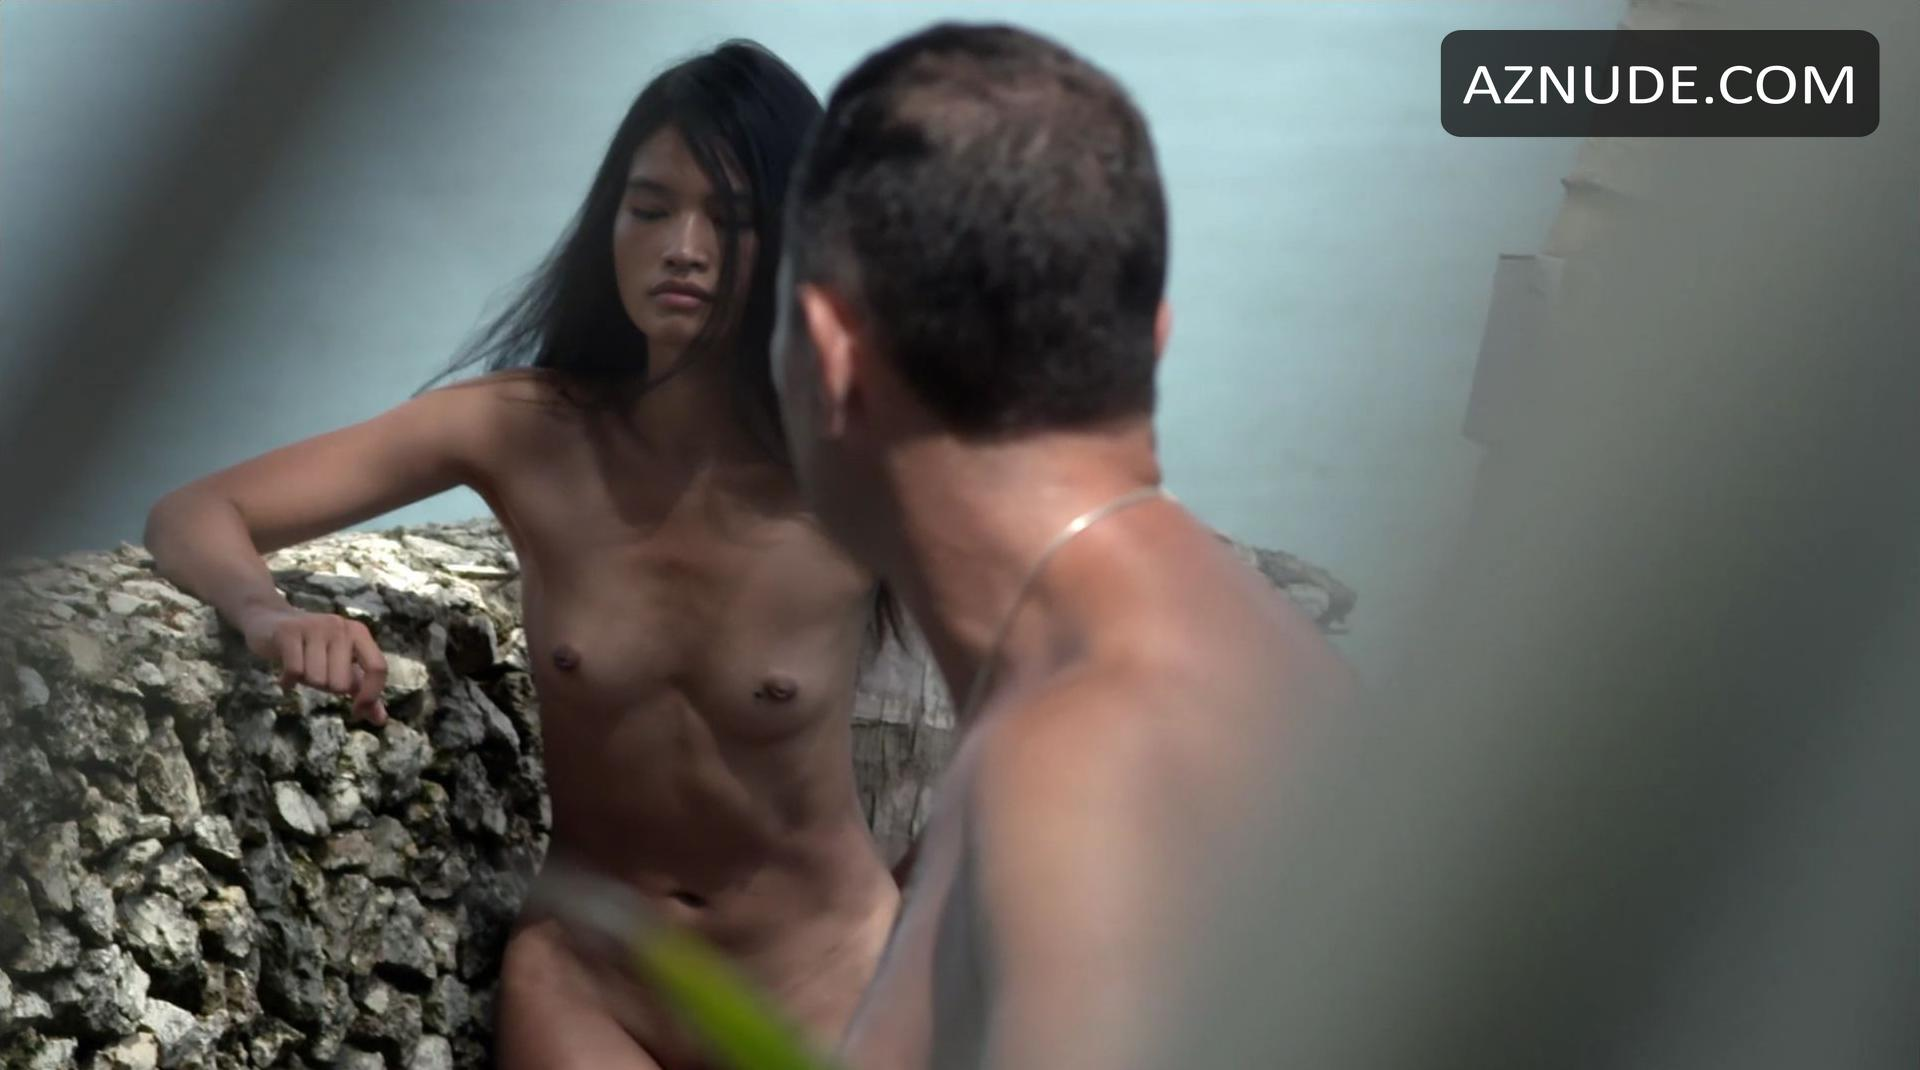 Hot Sex Janine Tugonon naked photo 2017